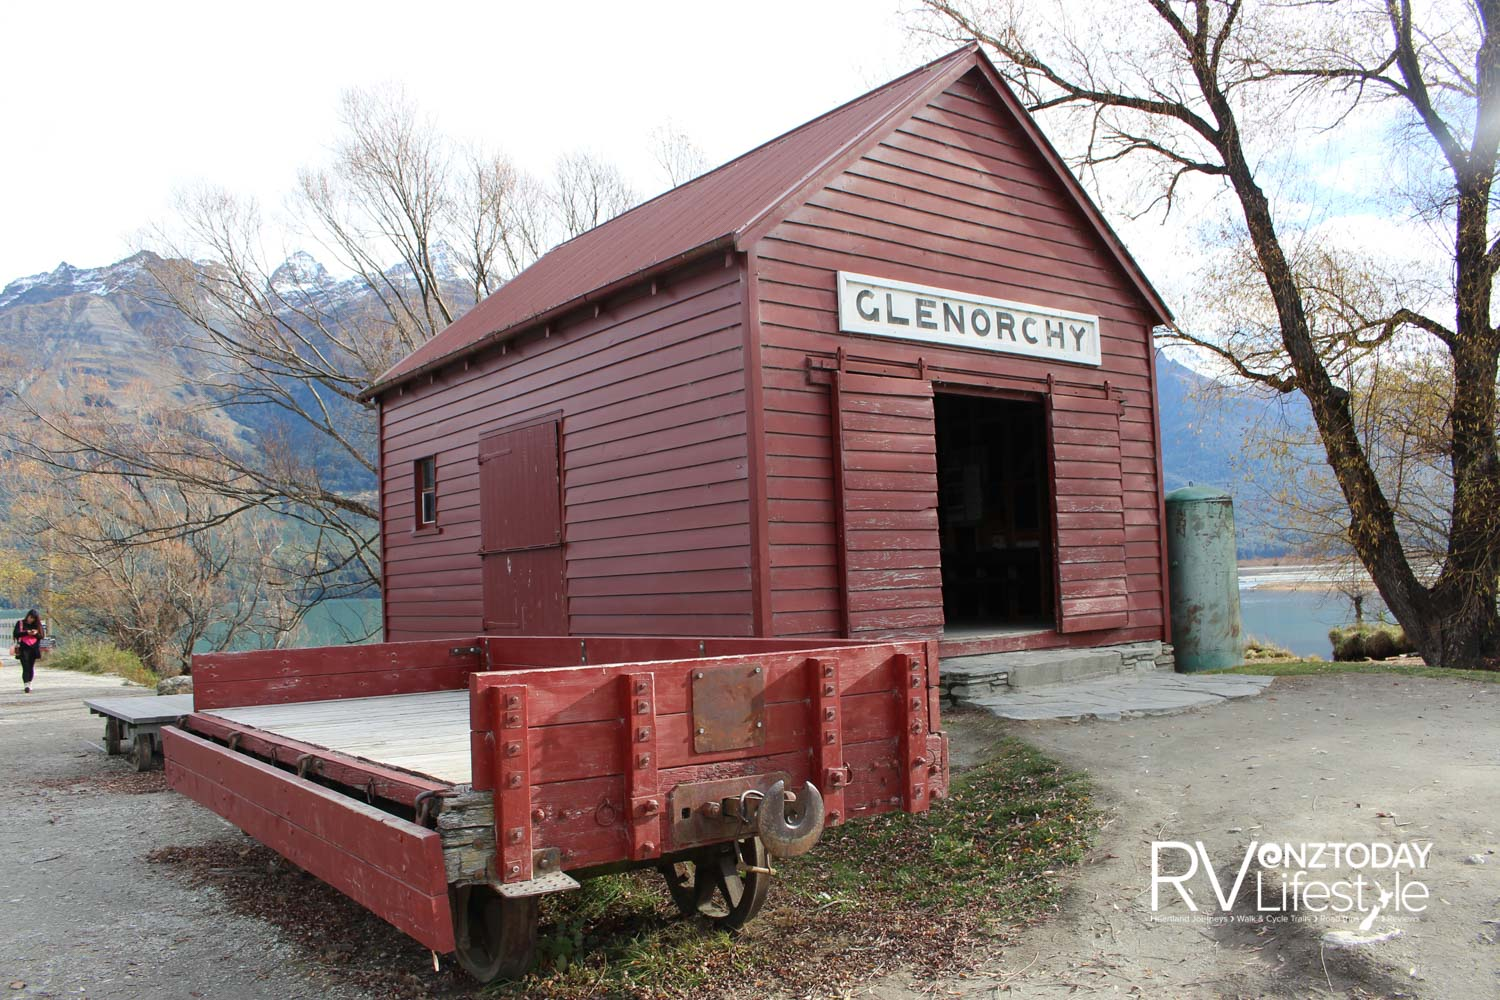 It's only in reasonably recent years that Glenorchy has been accessible by road. Prior to that the Earnslaw – run by New Zealand Railways – was the only means of transport in and out